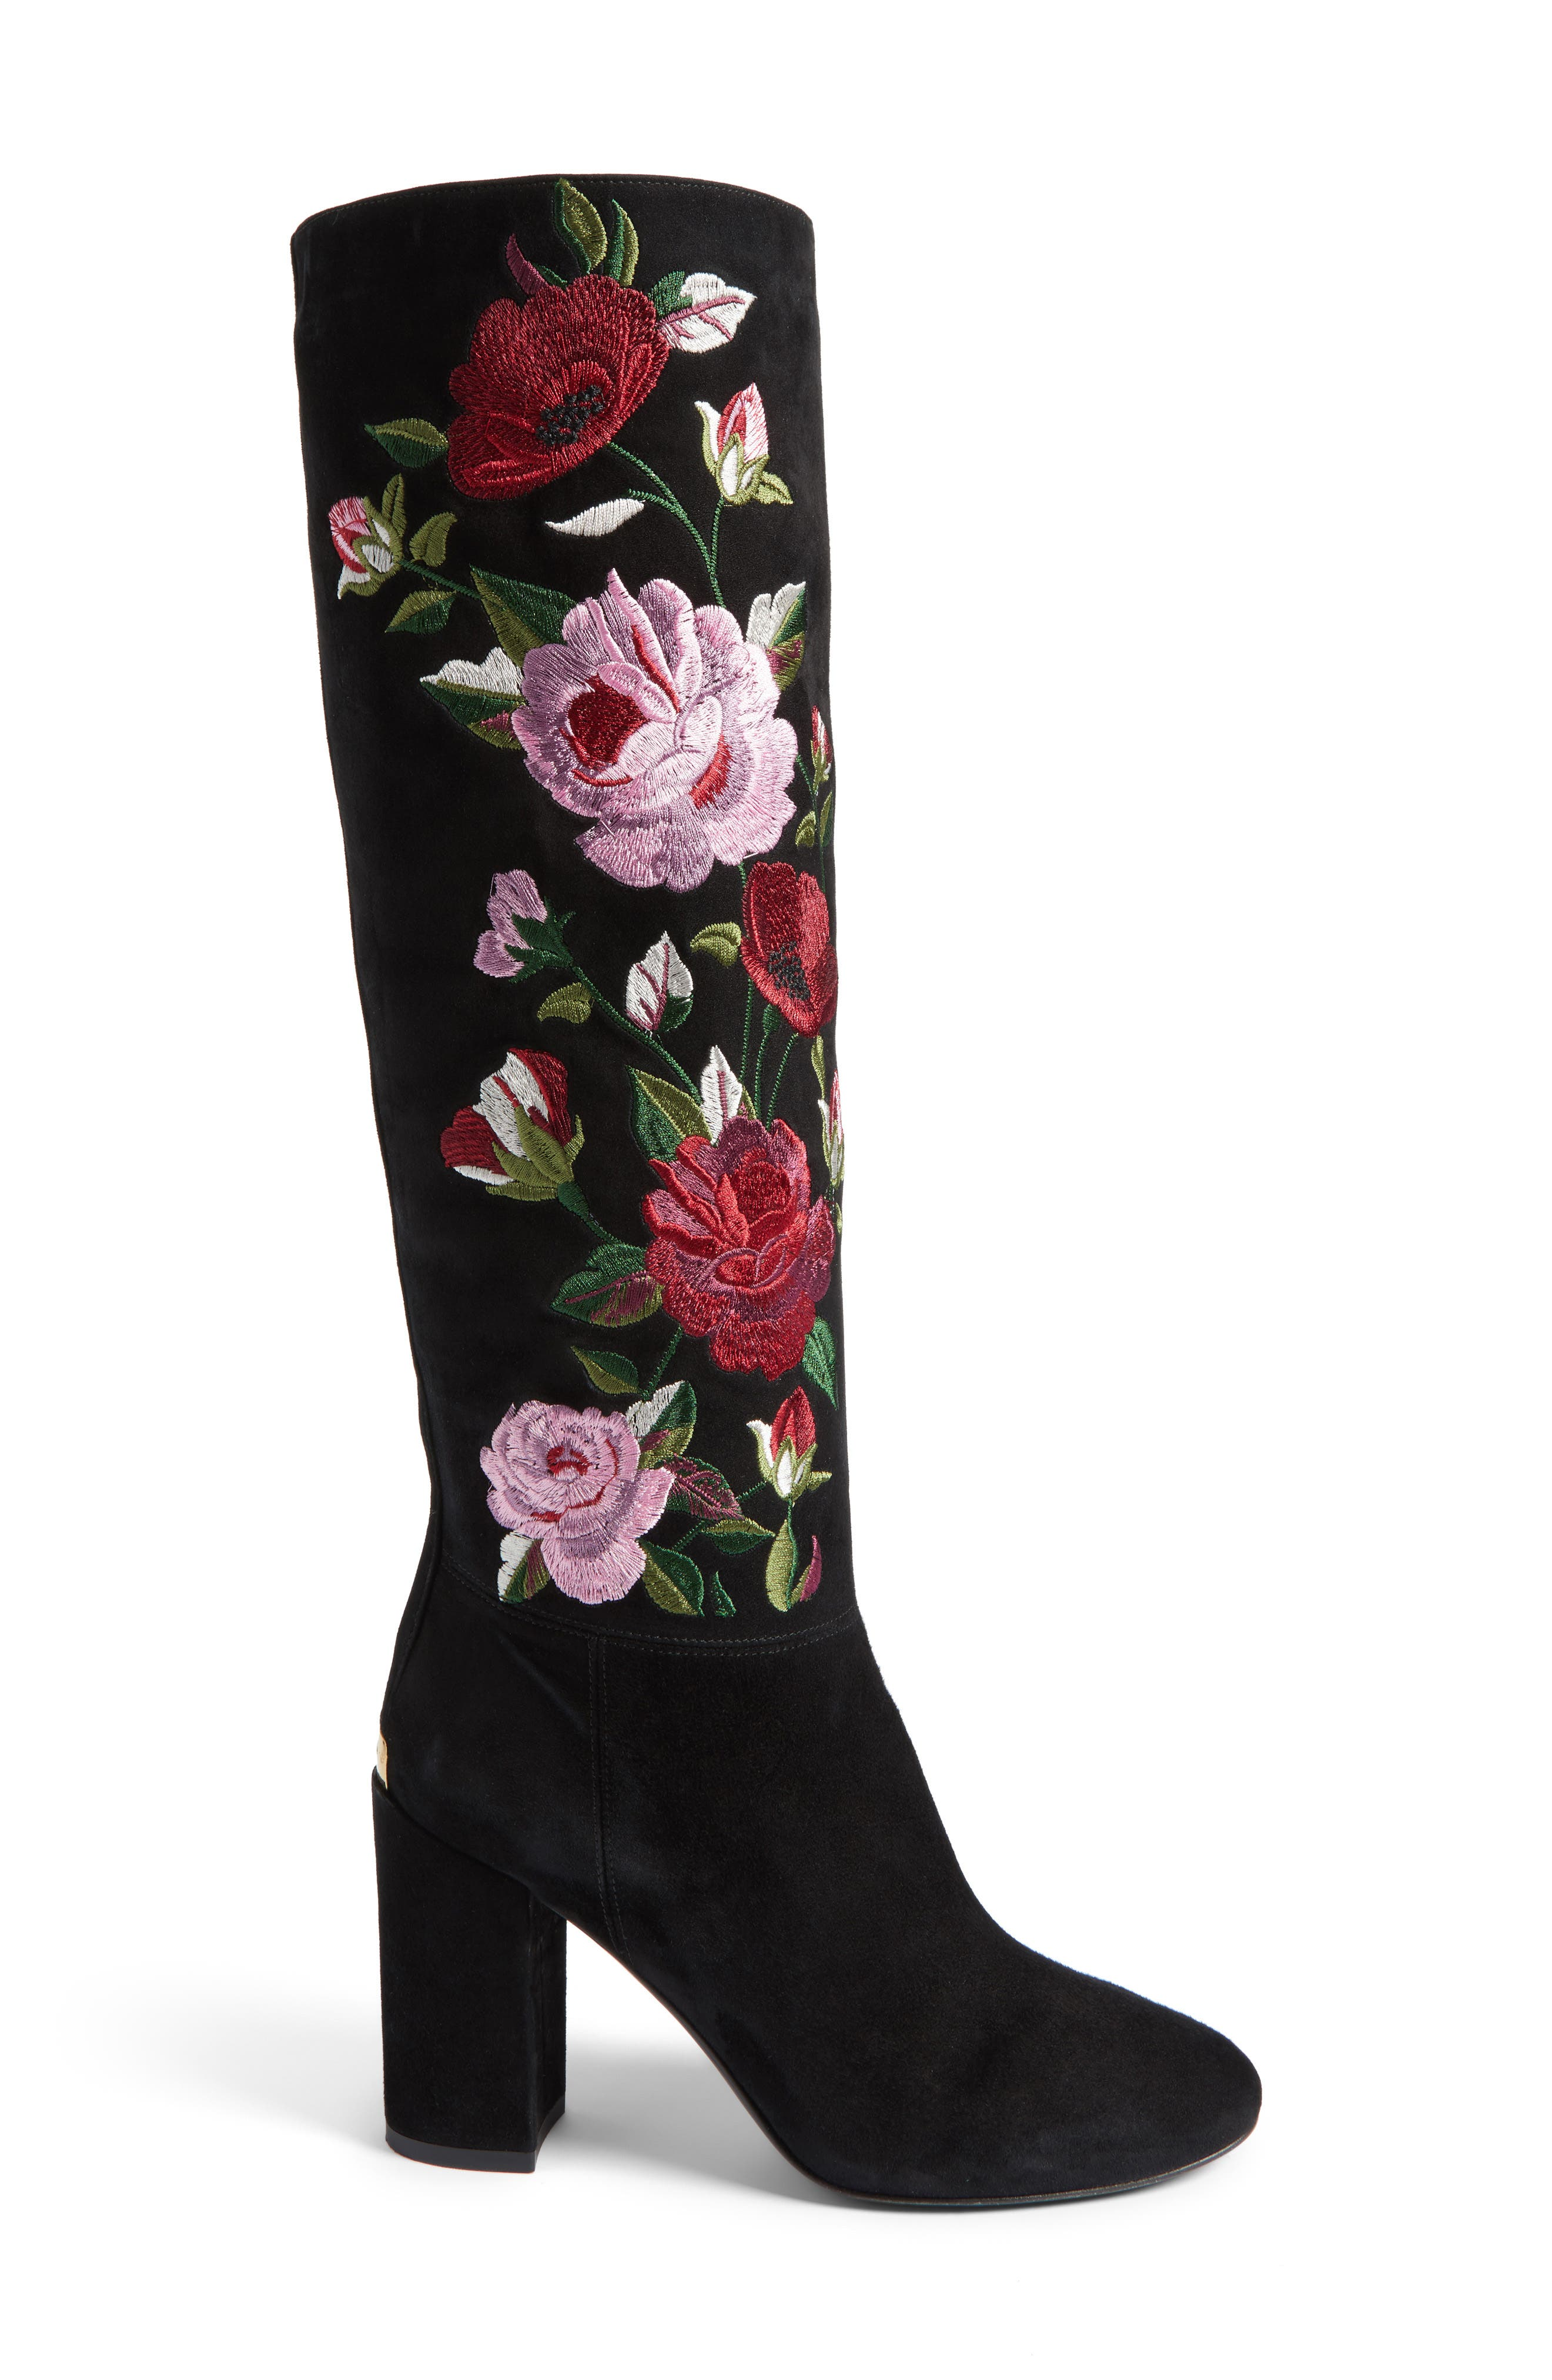 greenfield flower embroidered boot,                             Alternate thumbnail 3, color,                             001